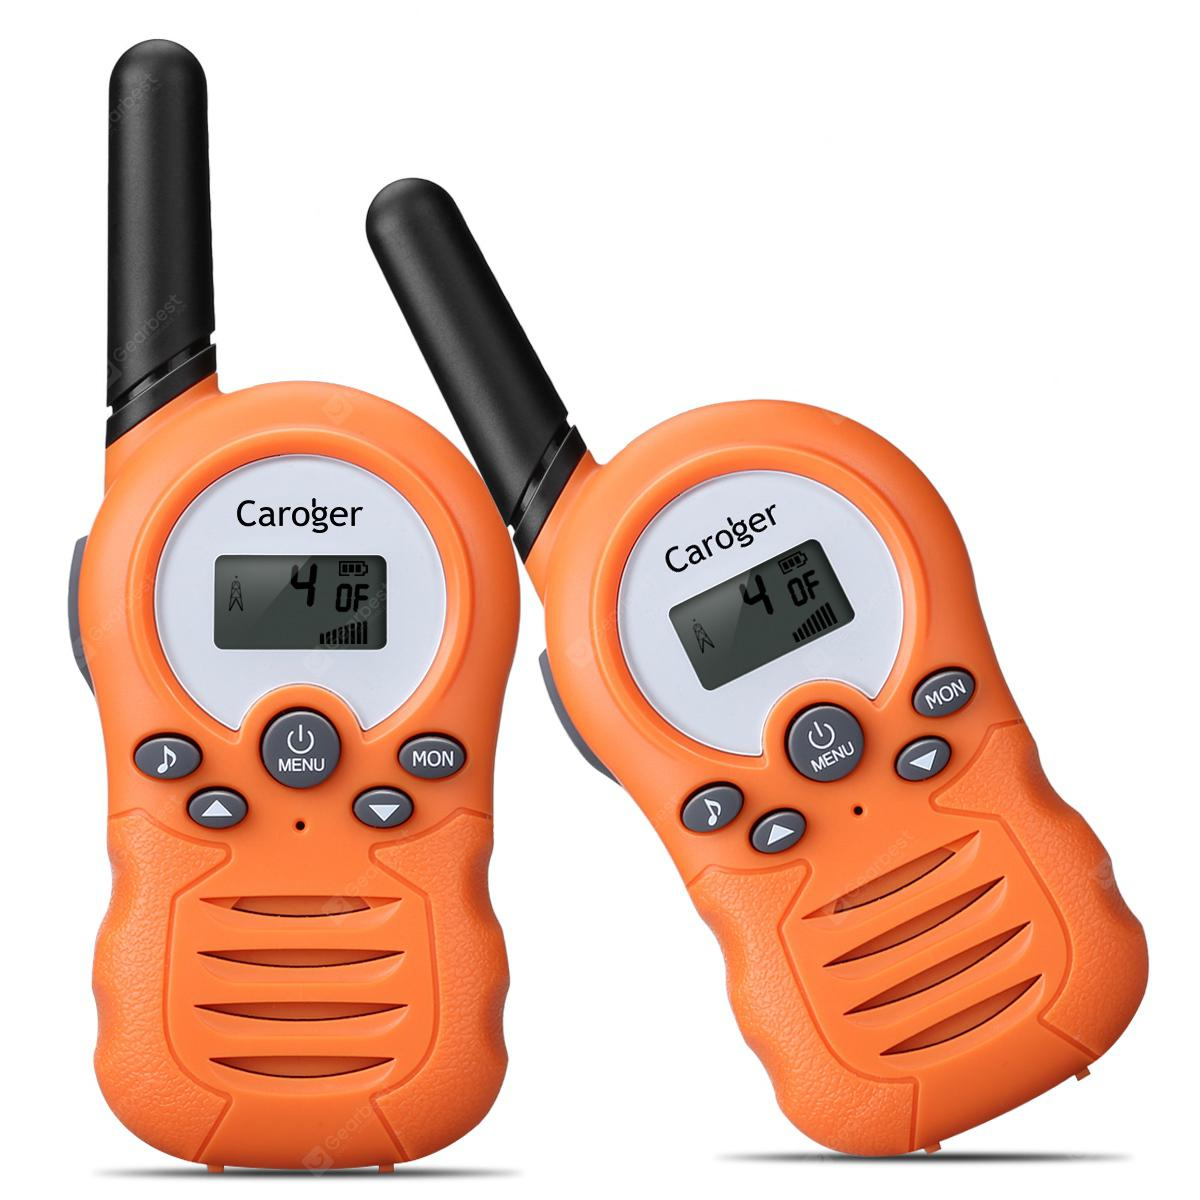 Caroger CR388A Lesen Bebas Walkie Talkie 22packs 2 Channel FRS / GMRS 462 / 467MHZ Two Way Radio Sehingga Meter 3300 / 2 Miles Range pegangan tangan Interfon Orange - ORANGE PAPAYA